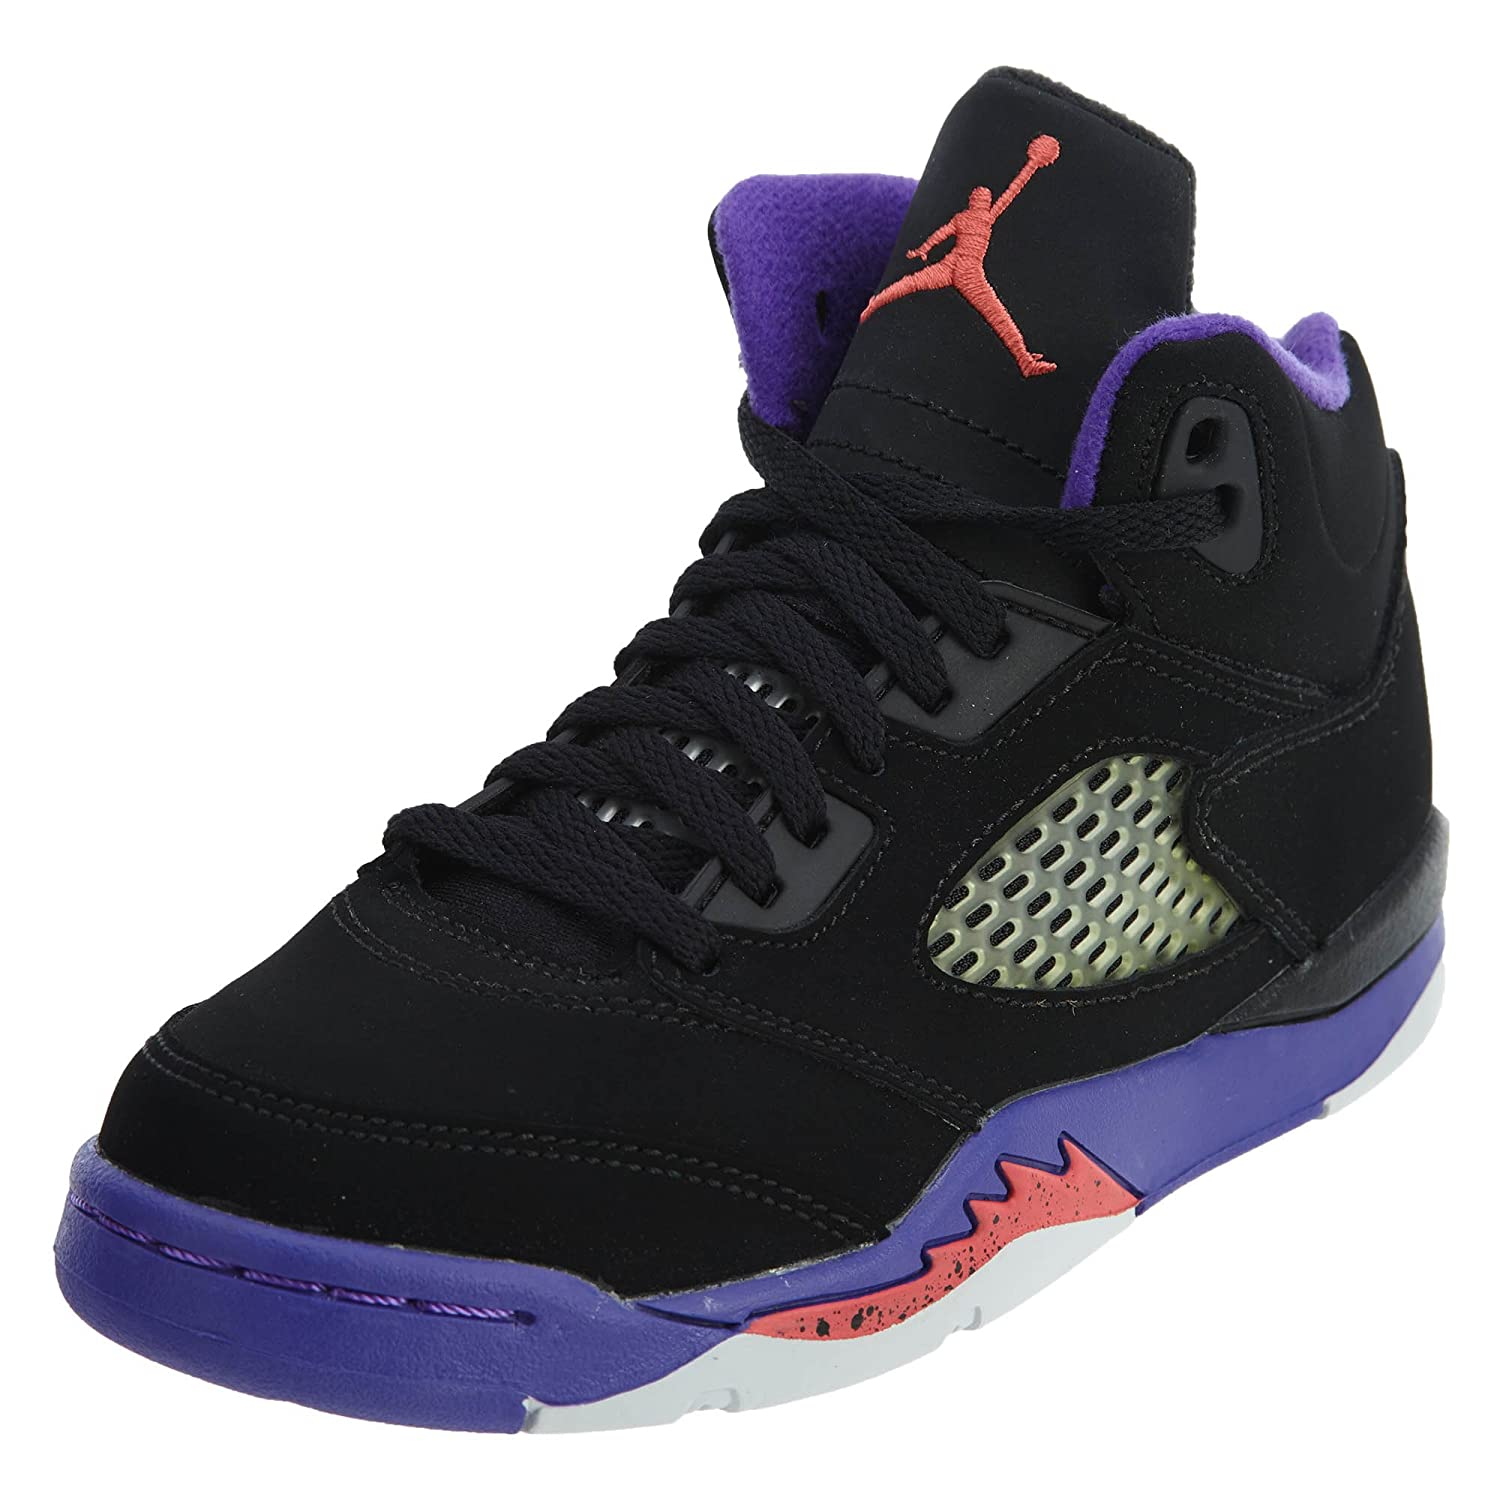 info for cfa6e aa4d7 Amazon.com   440893-017 PRESCHOOL 5 RETRO GP JORDAN BLACK EMBER GLOW FIERCE  PURPLE   Running